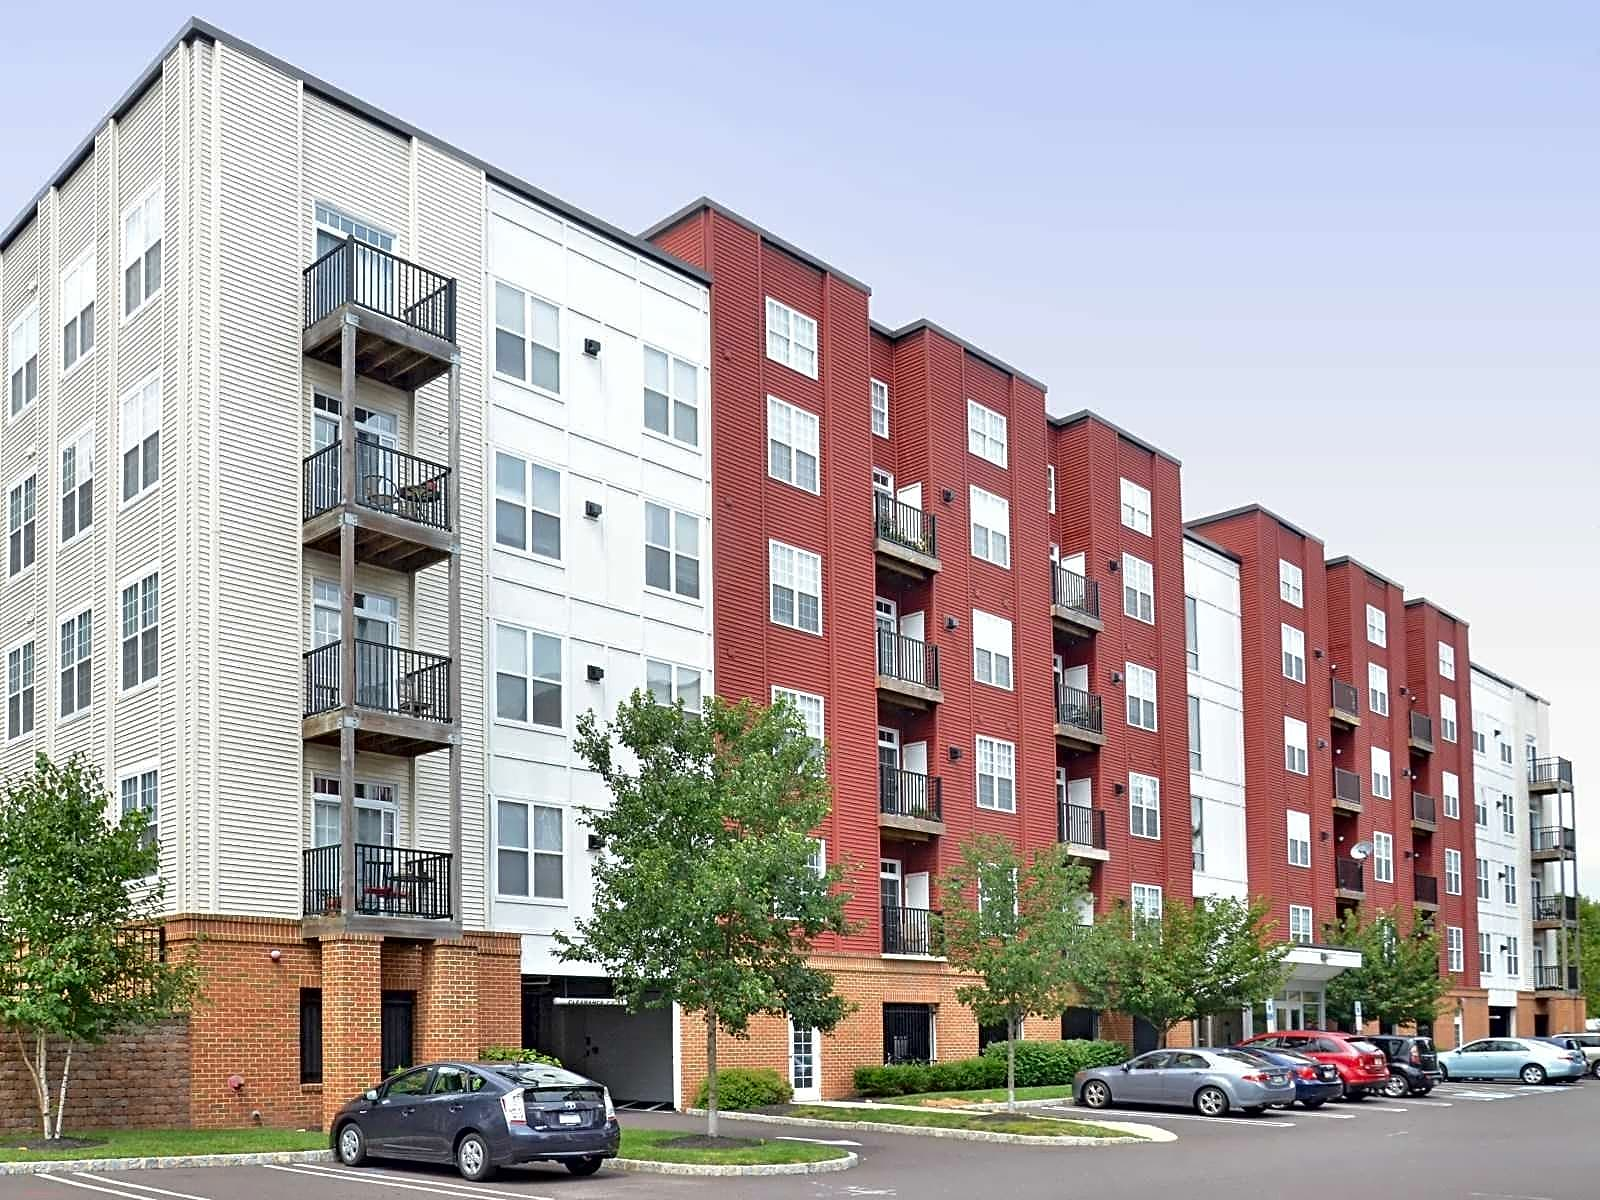 Dog Friendly Apartents Valley Forge